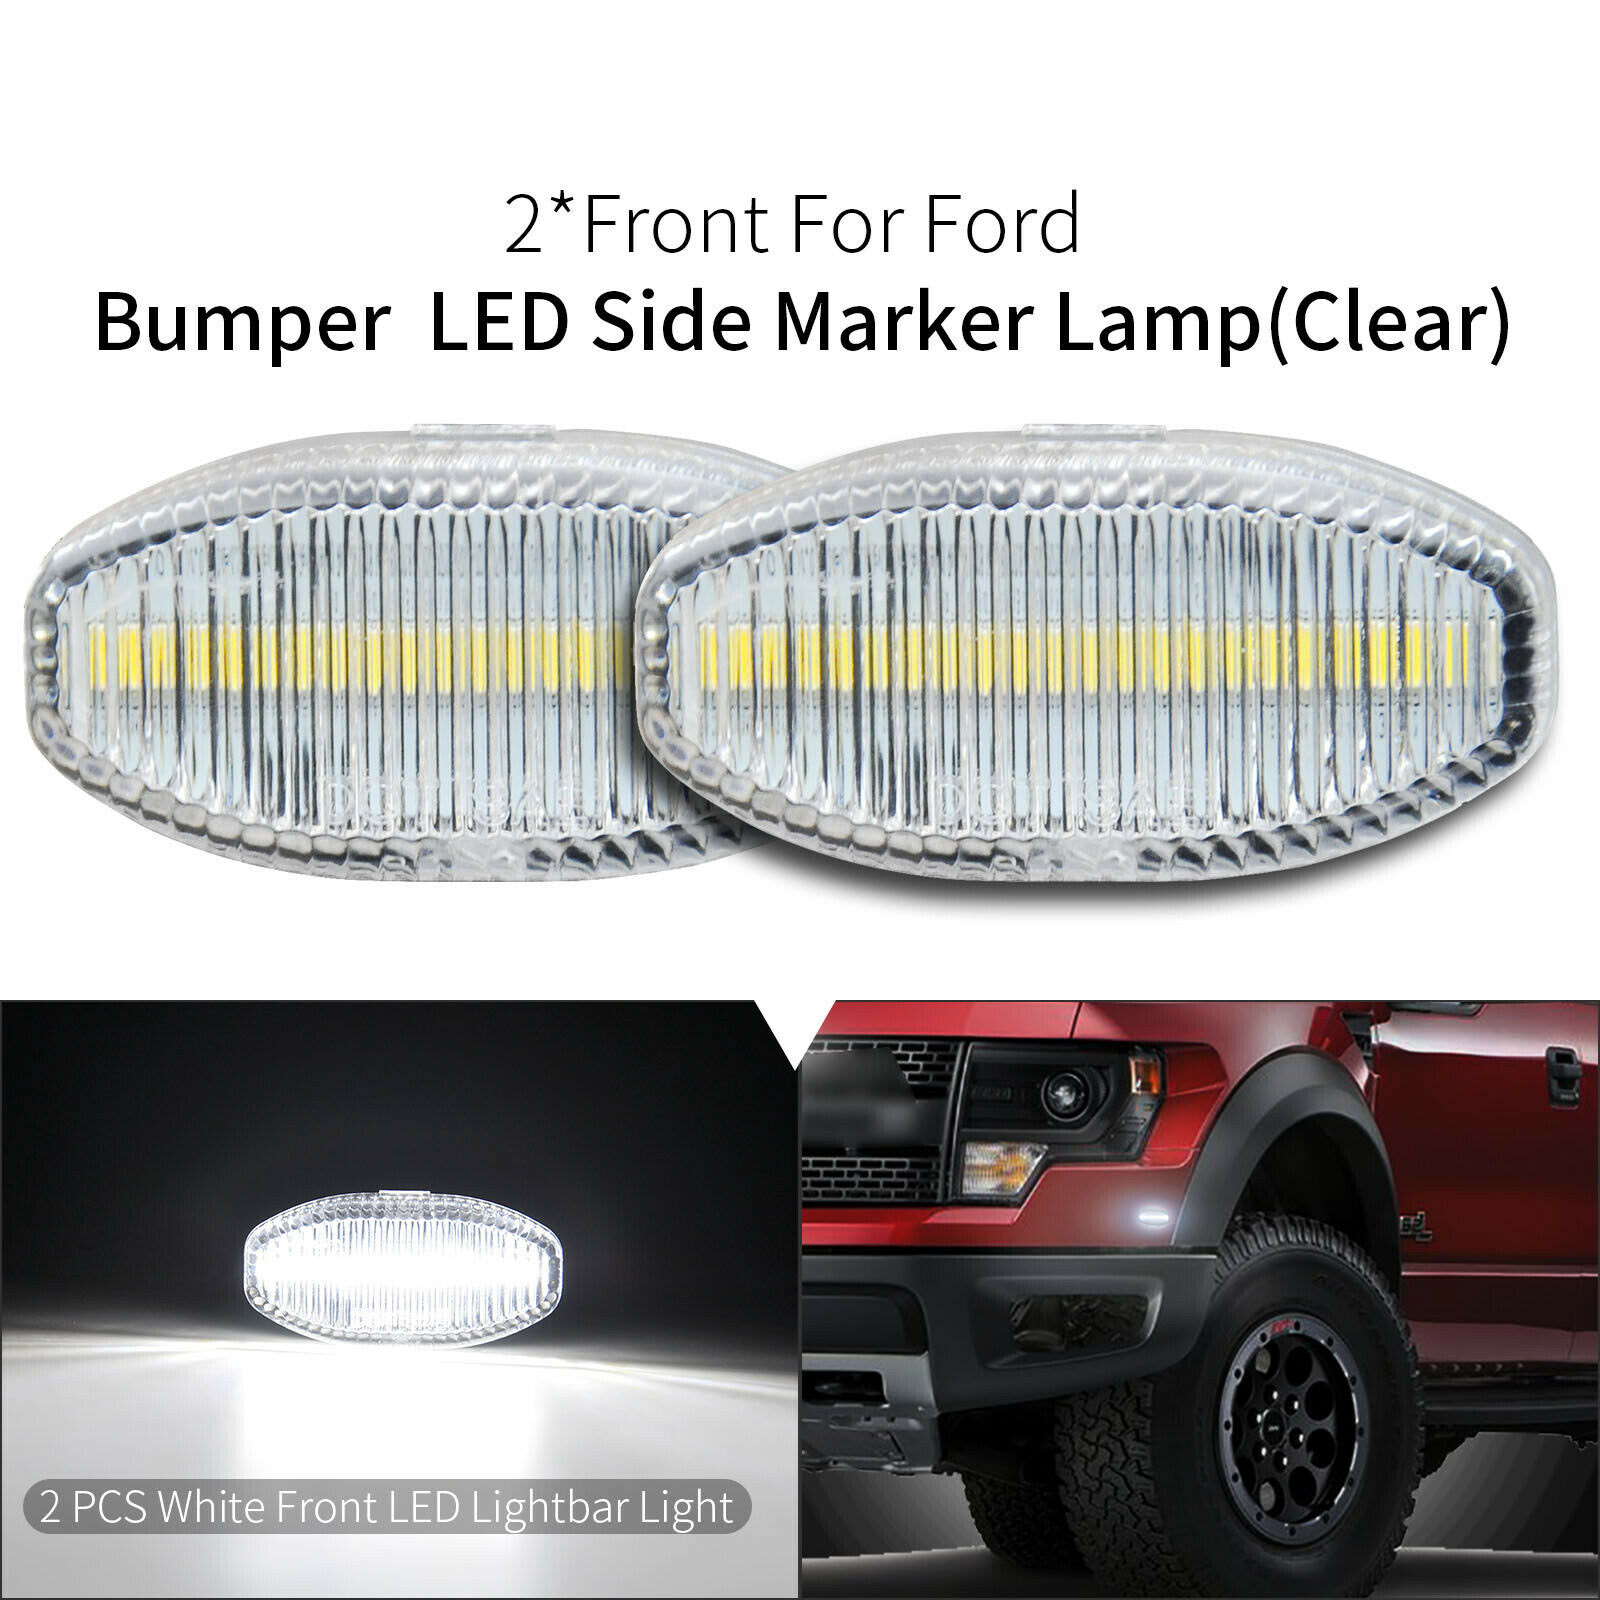 Front Bumper White <font><b>LED</b></font> Side Marker Light Lamp For Ford F150 SVT Raptor 2010-2014 image